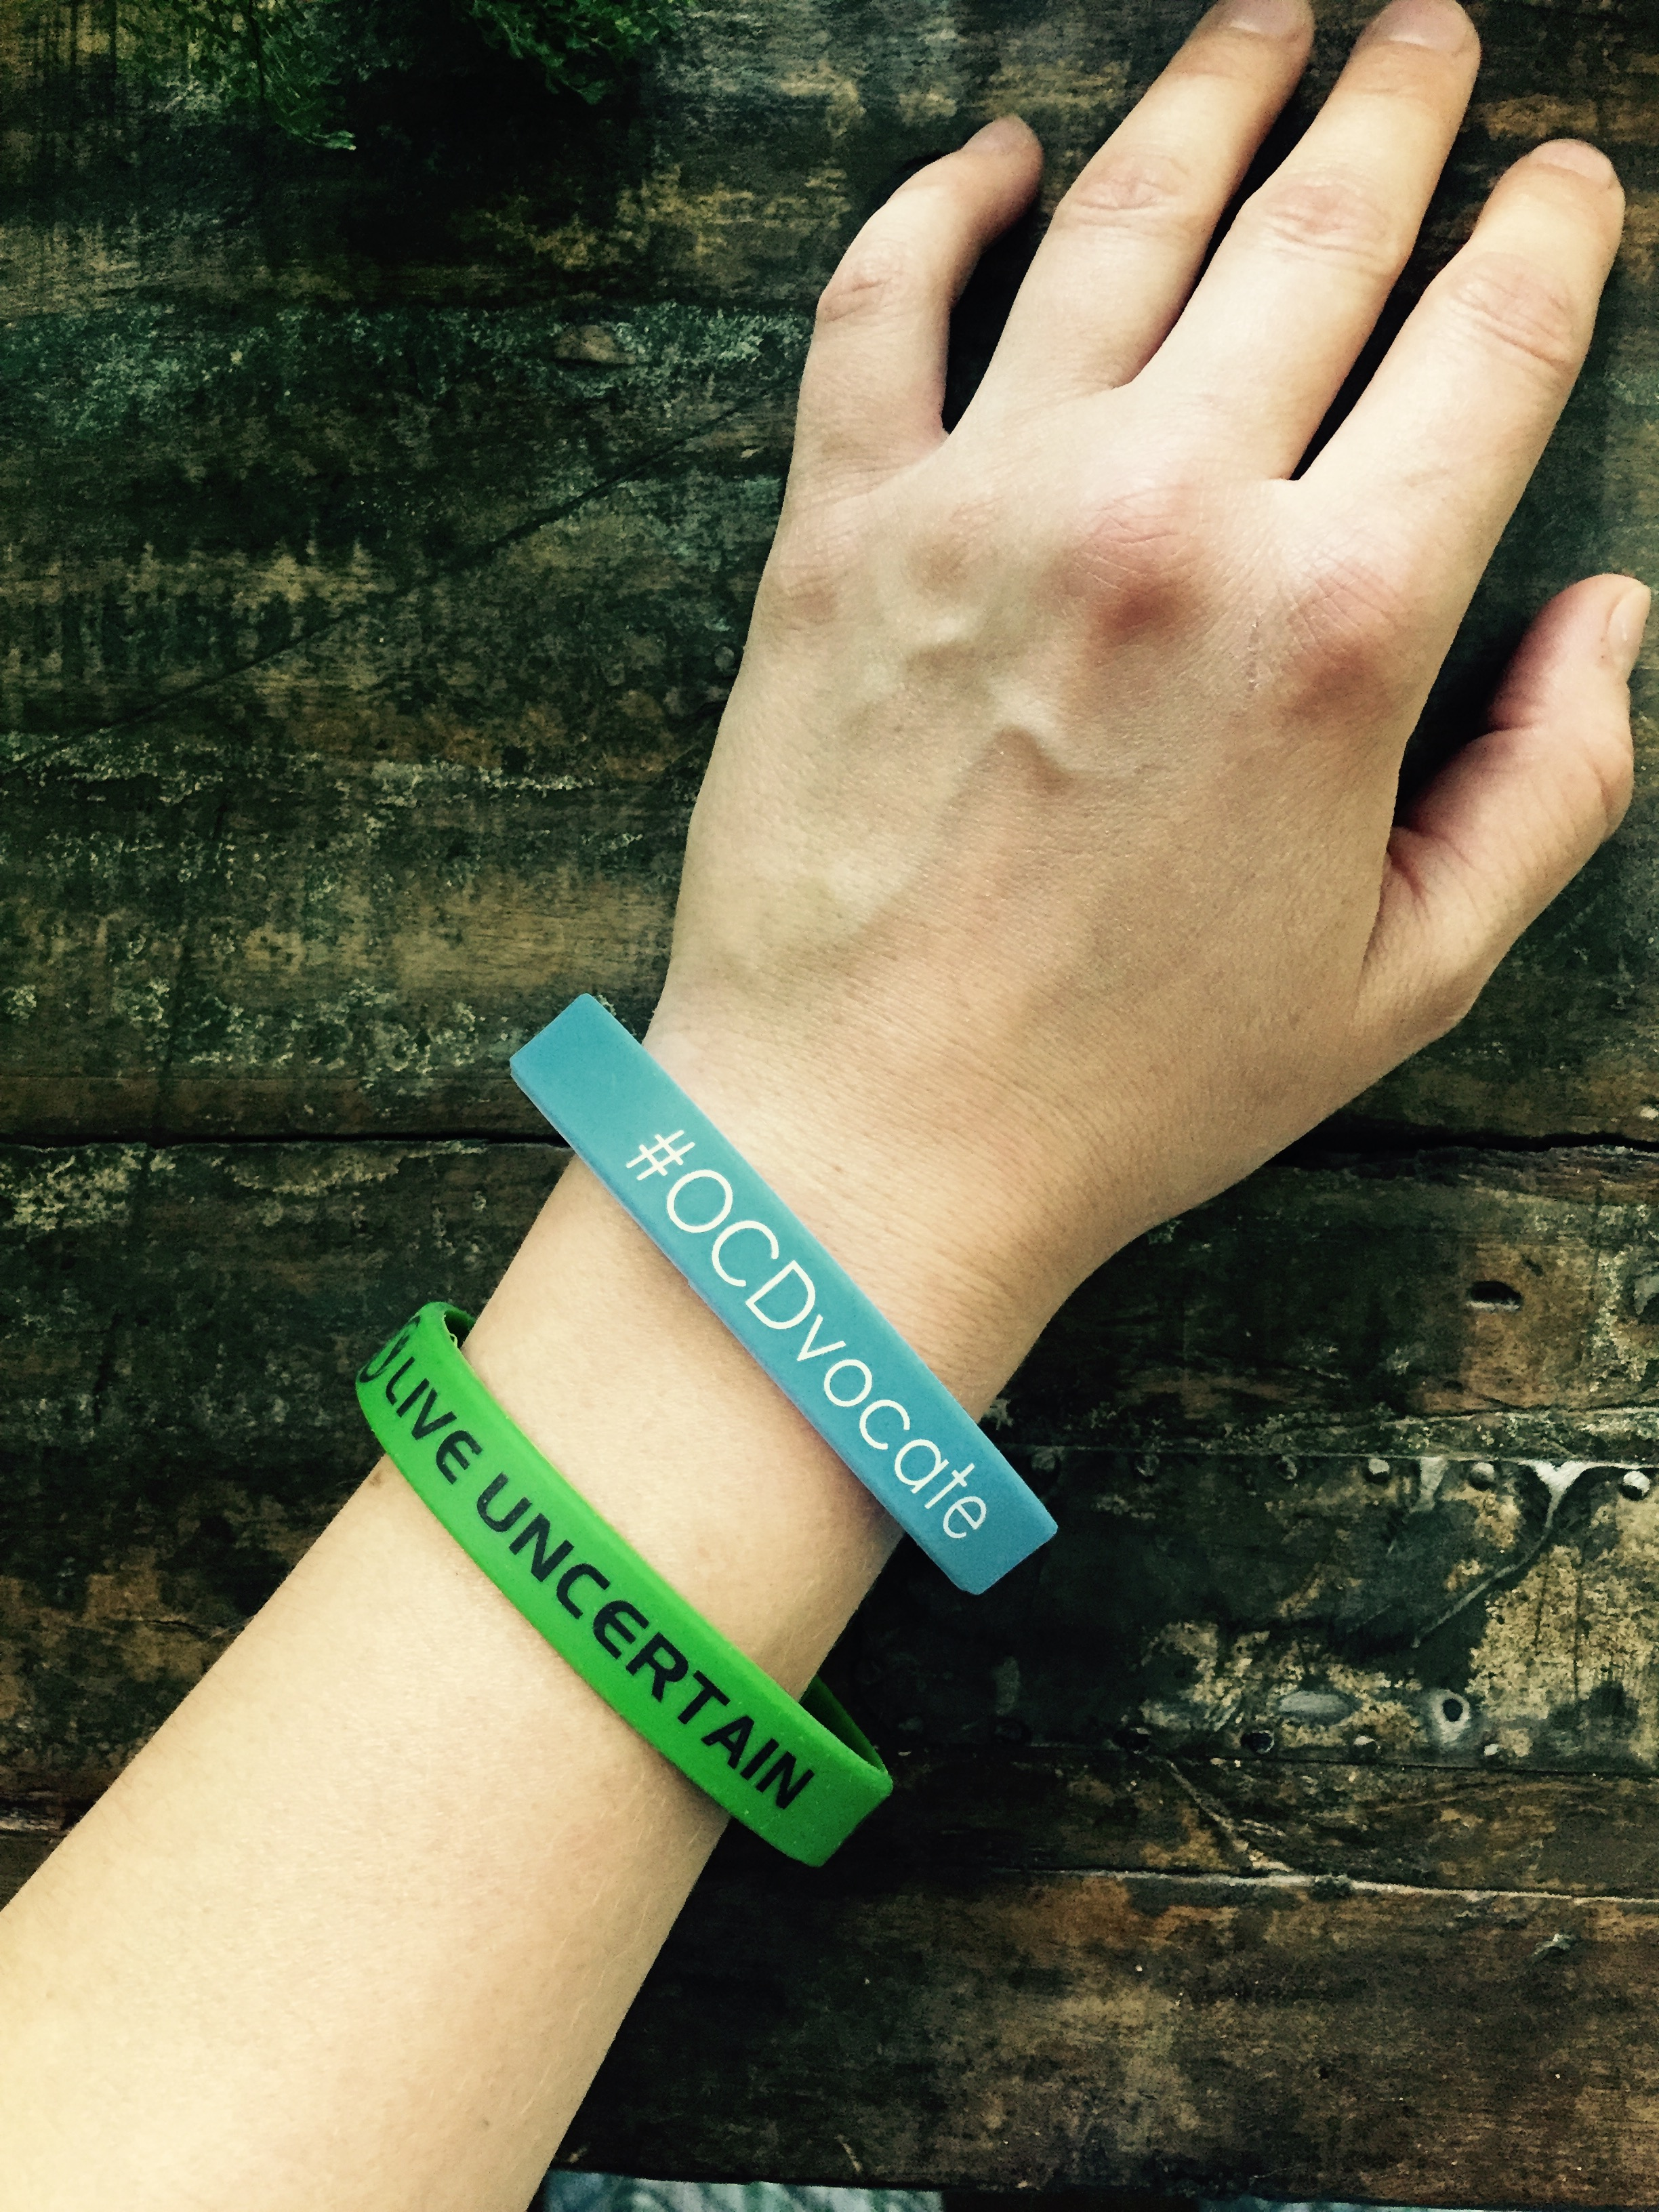 ovarian ocd awareness cancer sexual lapel teal pin bracelet cervical assault ribbon